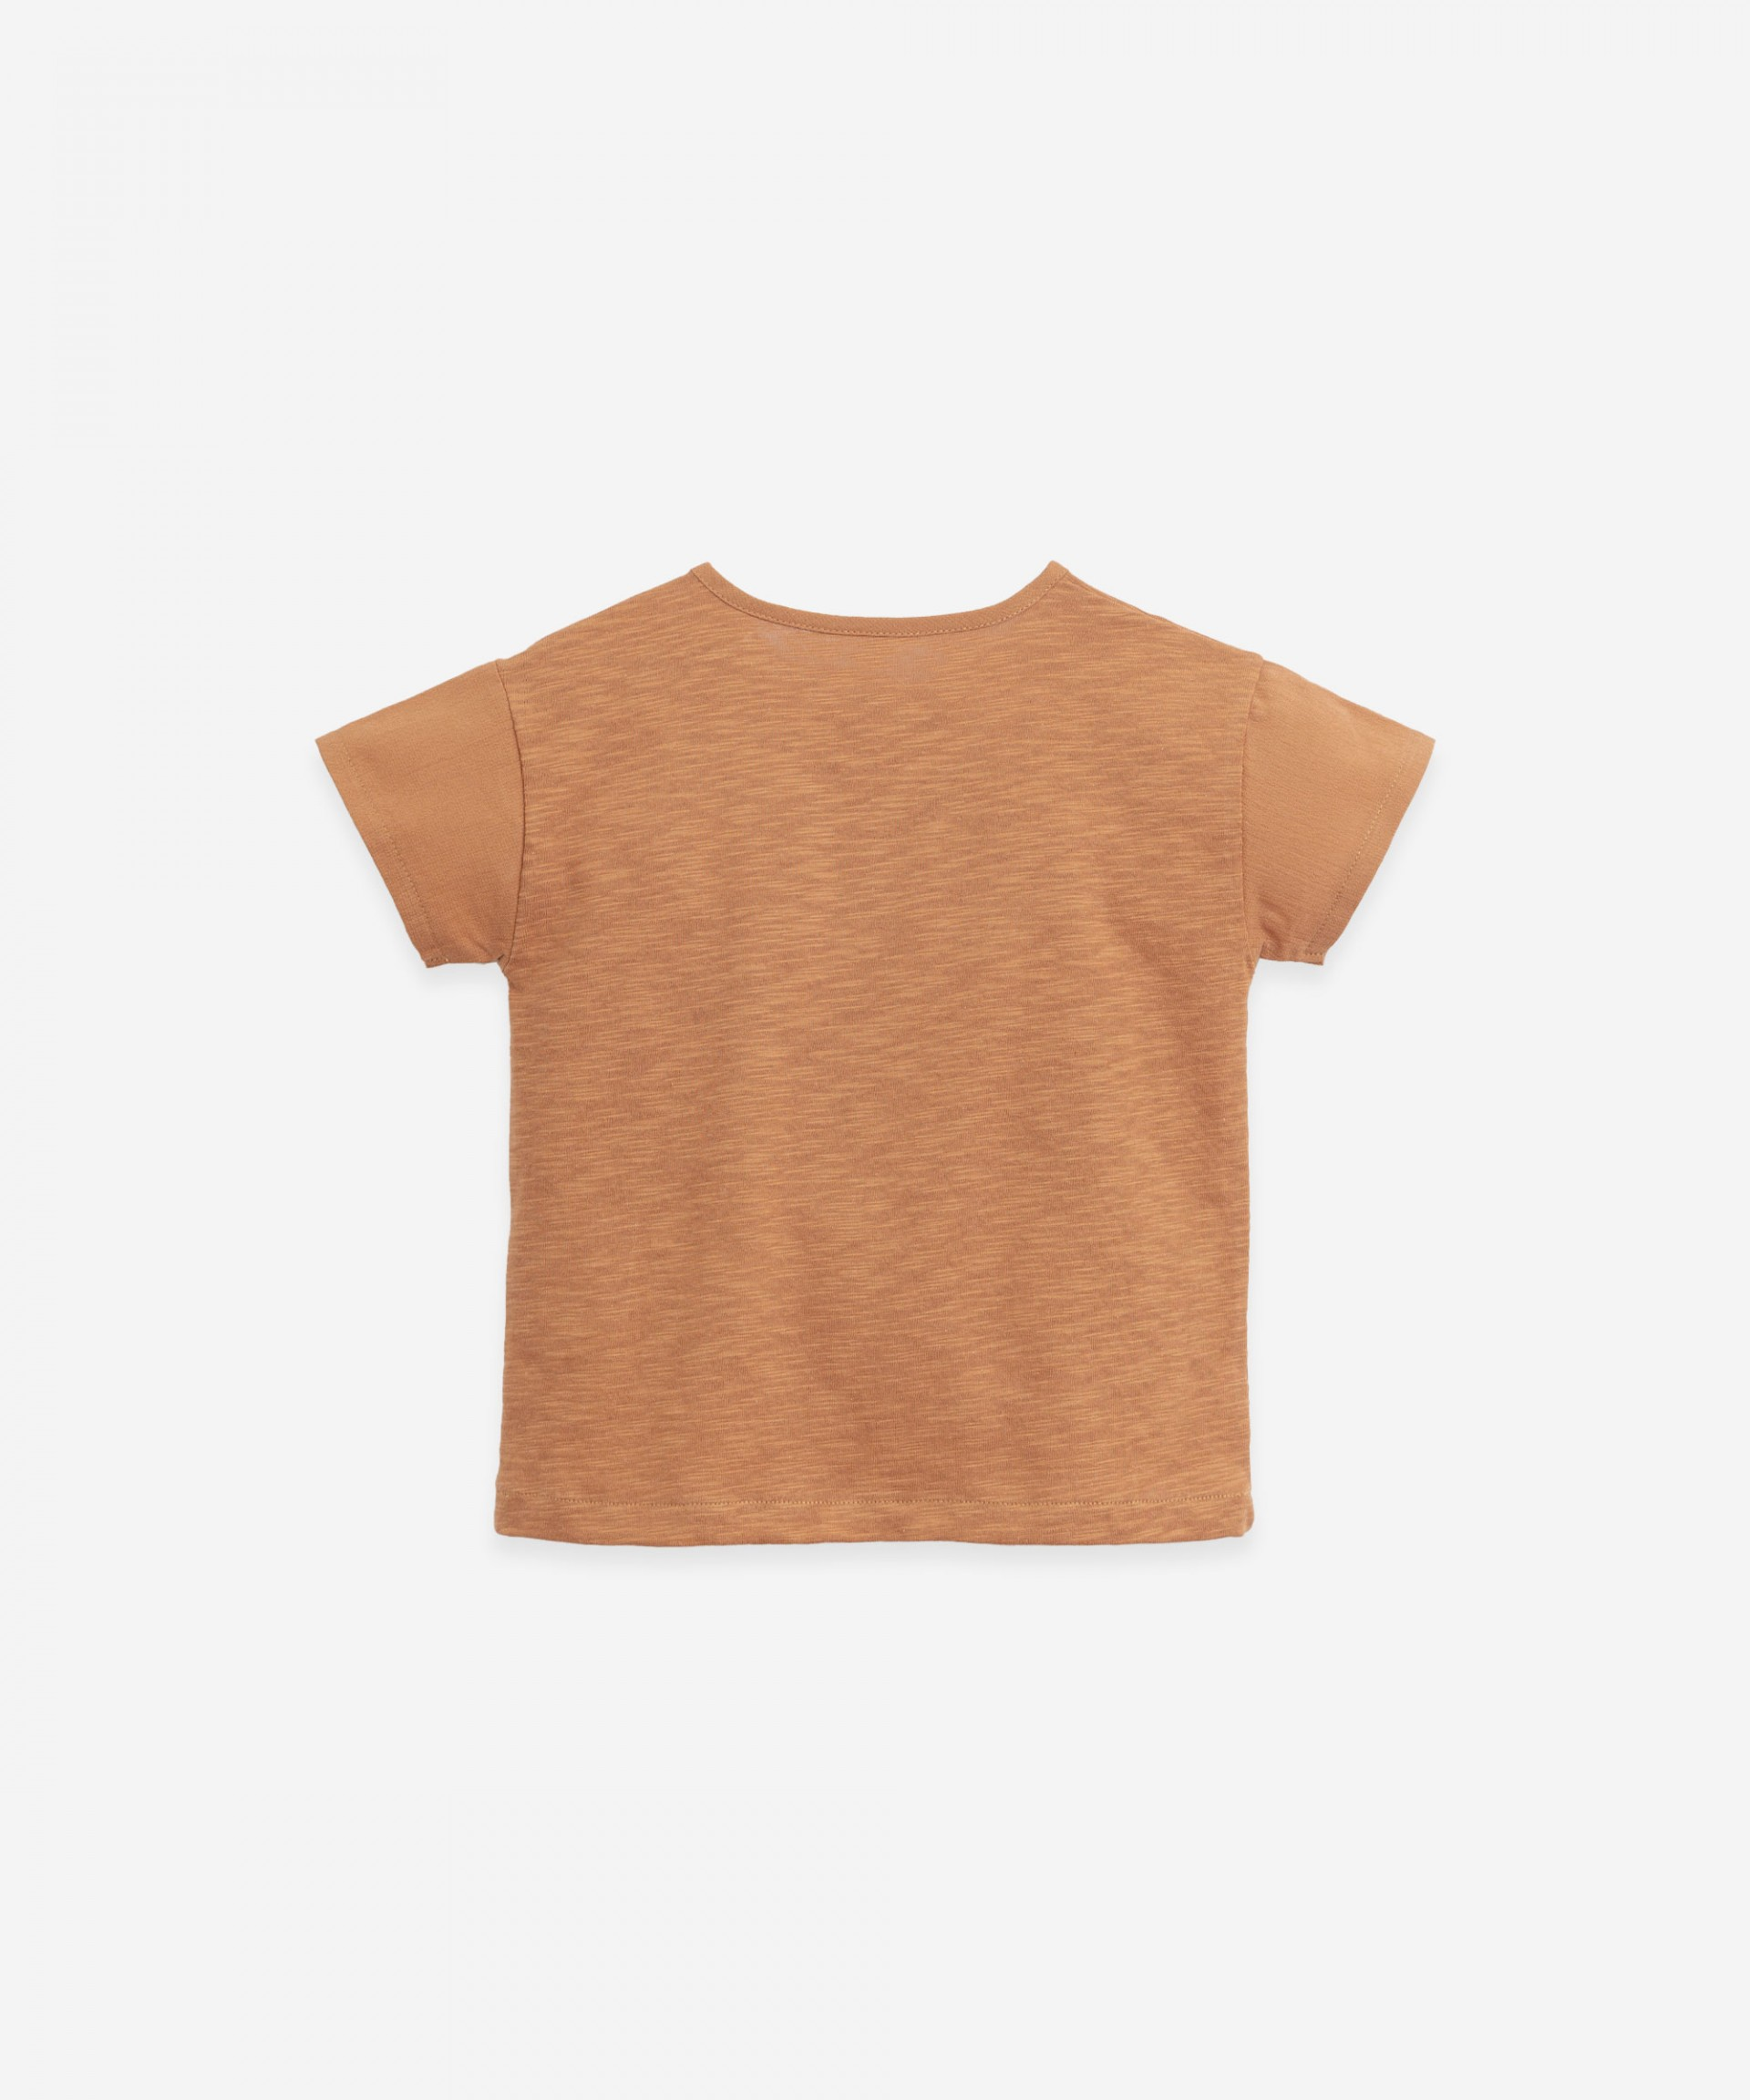 T-shirt in organic cotton with buttons | Botany